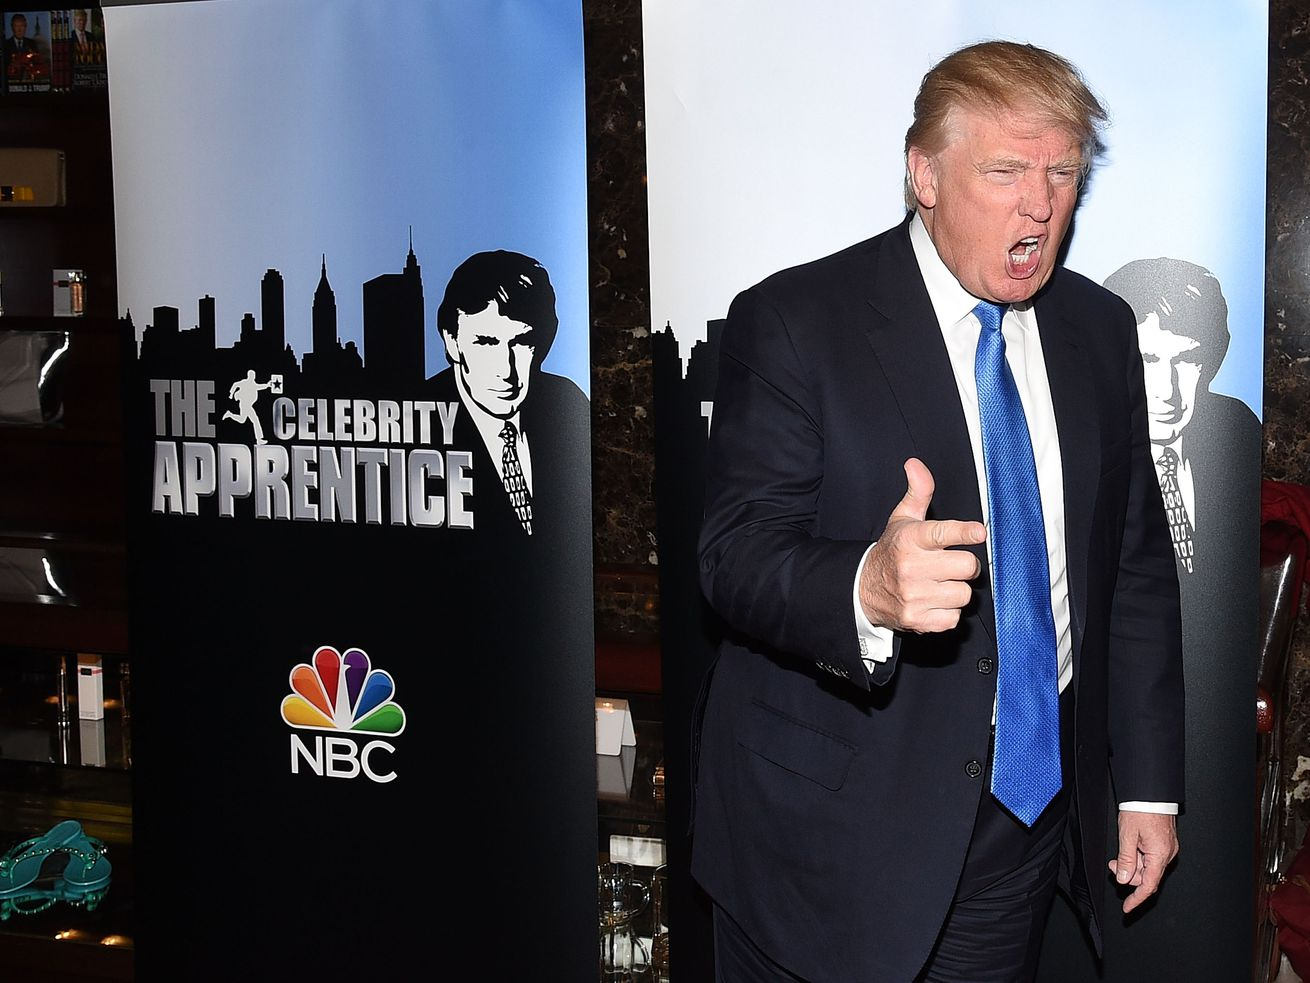 Donald Trump poses on the red carpet for a <em>Celebrity Apprentice </em>event in New York City in February 2015.